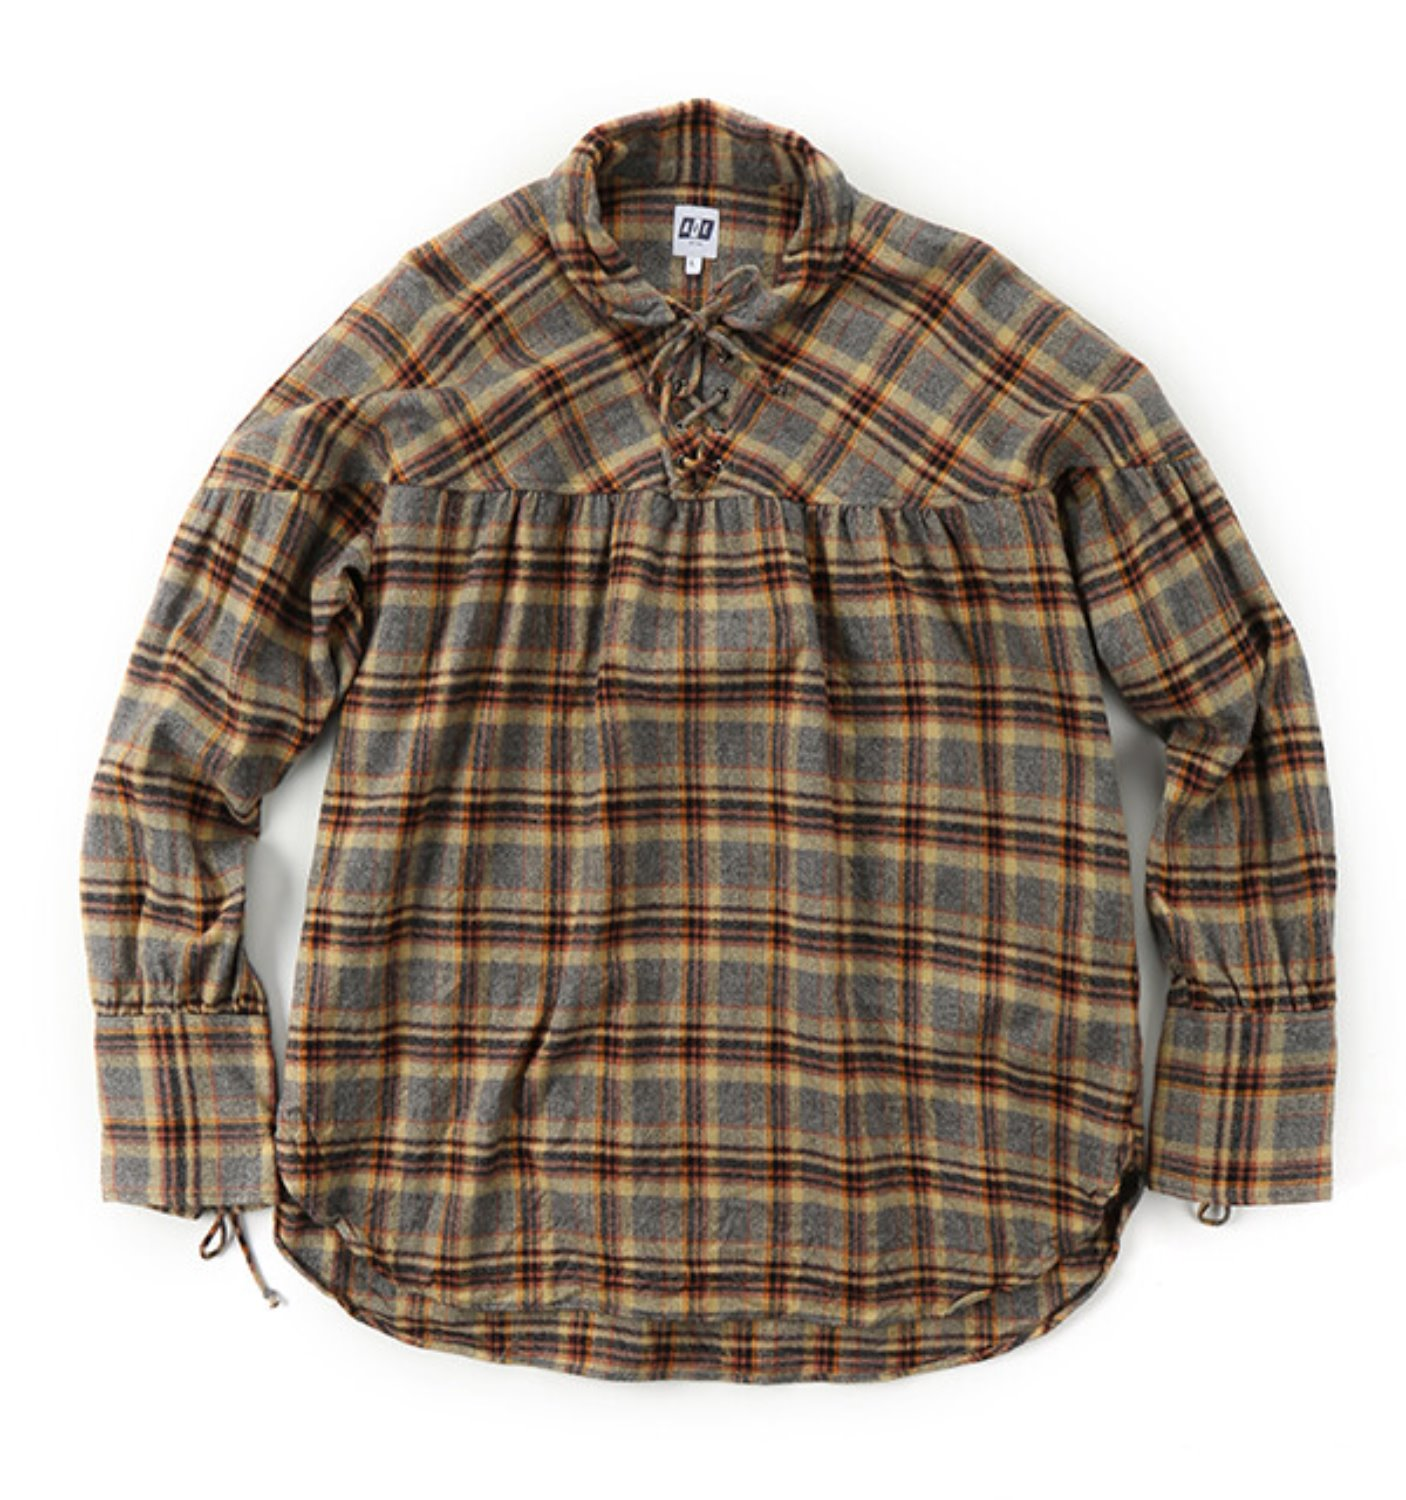 STRING SMOCK GREY KHAKI PLAID FLANNEL